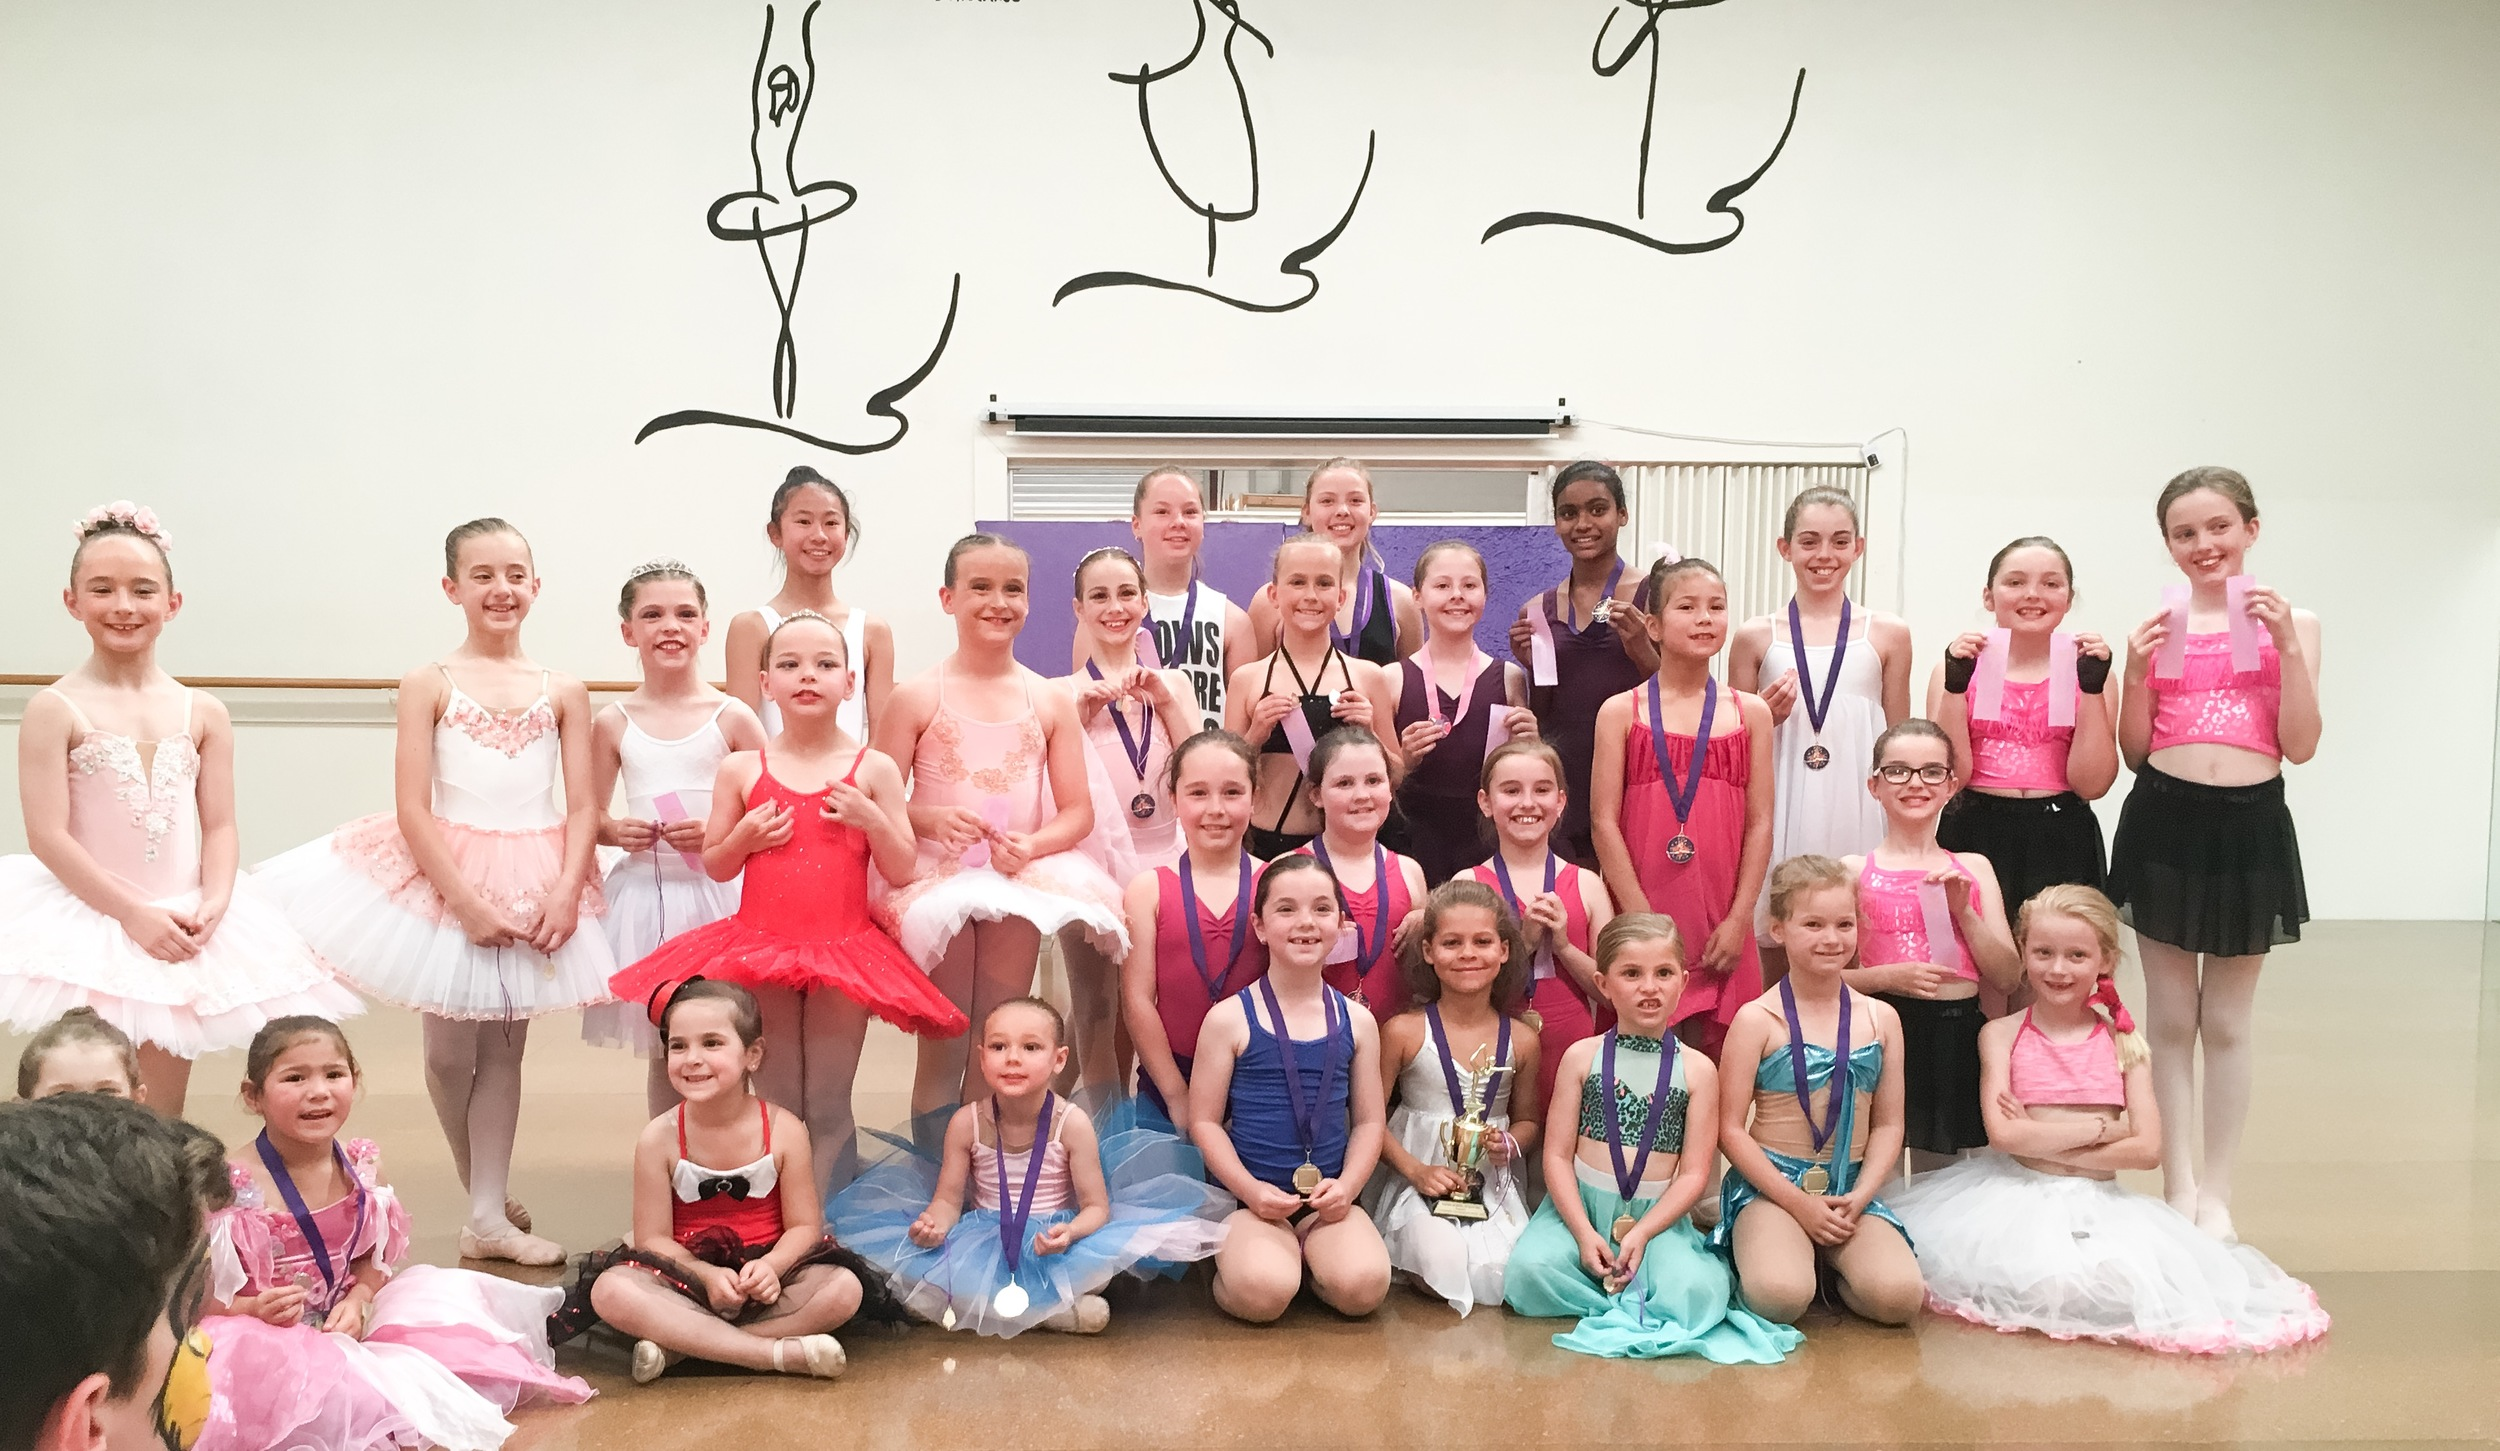 Mathis Dance Studios choreography competition Melbourne